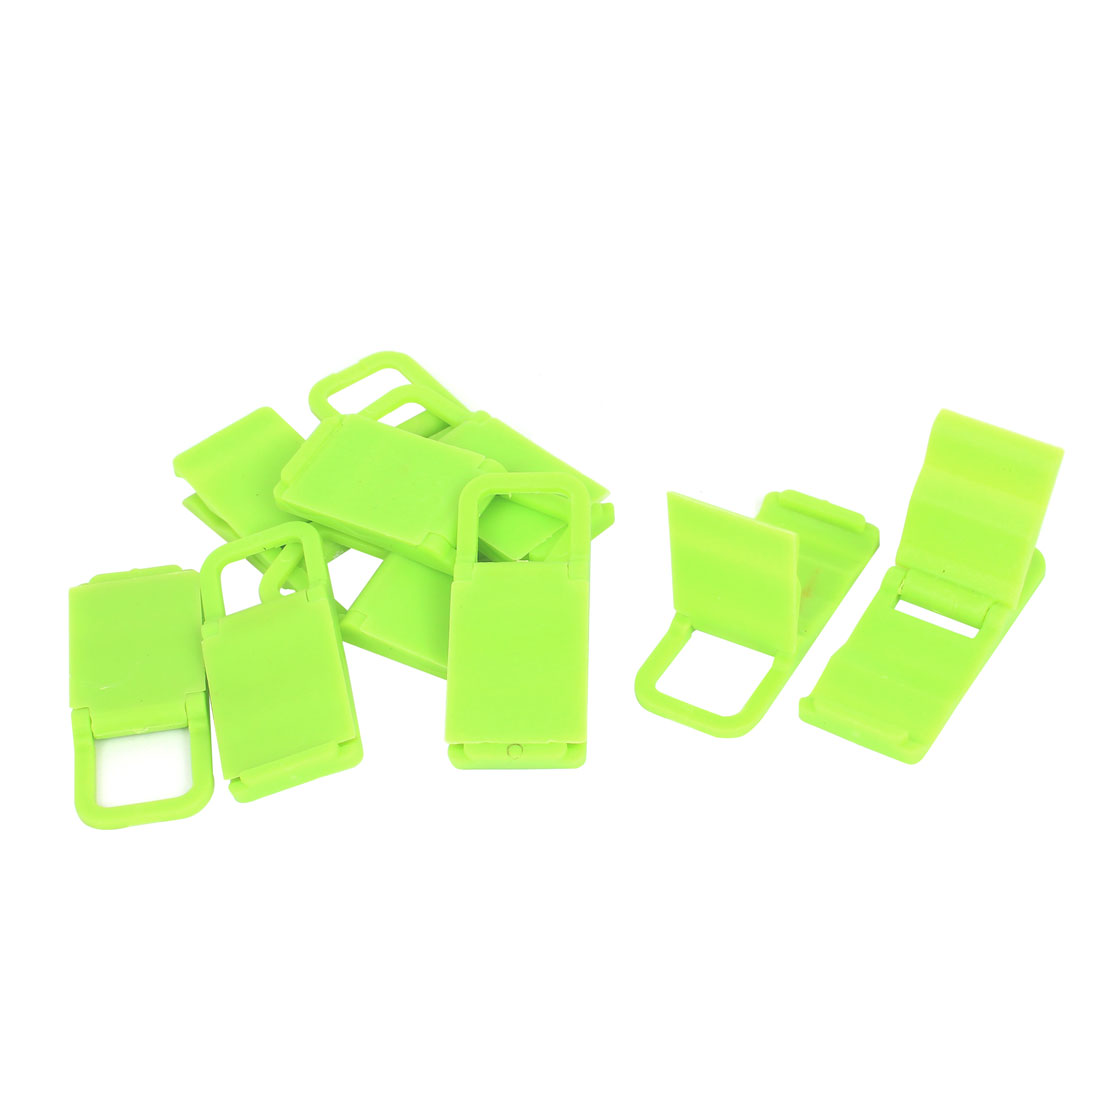 10pcs Beach Chair Mobile Phone Folding Holder Stand Bracket Support Green